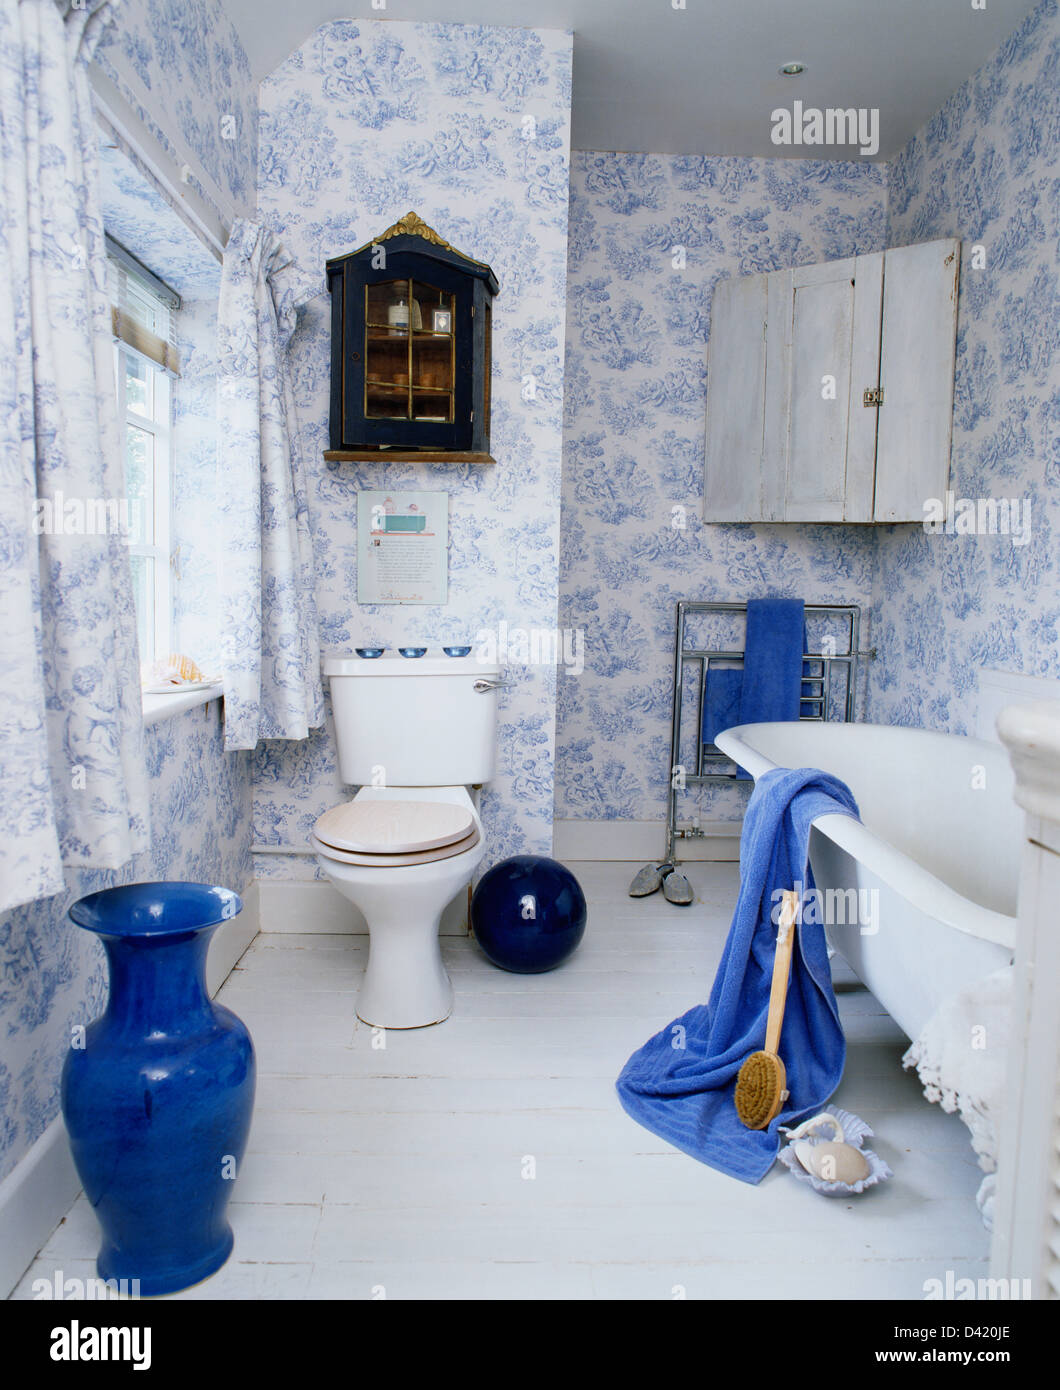 Blue And White Bathrooms Country: Tall Blue Vase In Country Bathroom With Blue+white Toile